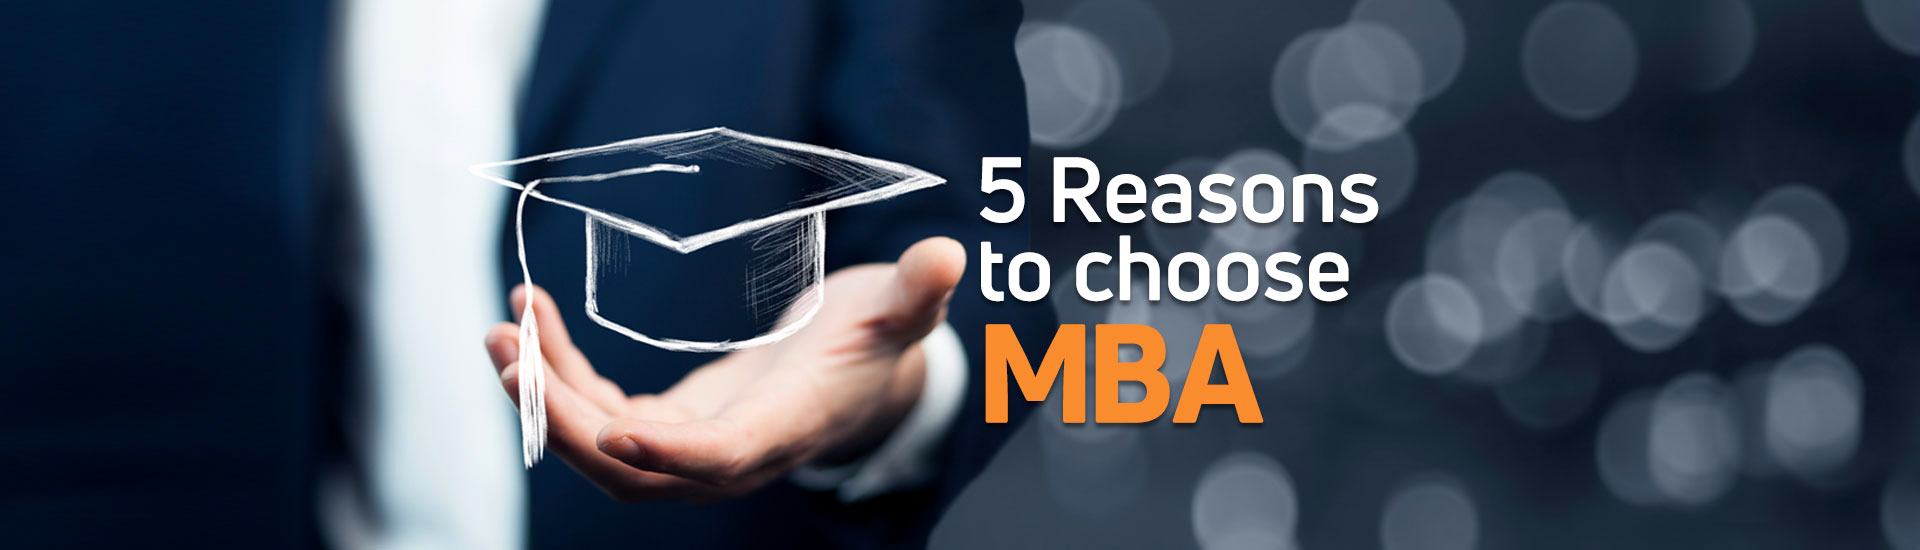 Reasons to choose MBA